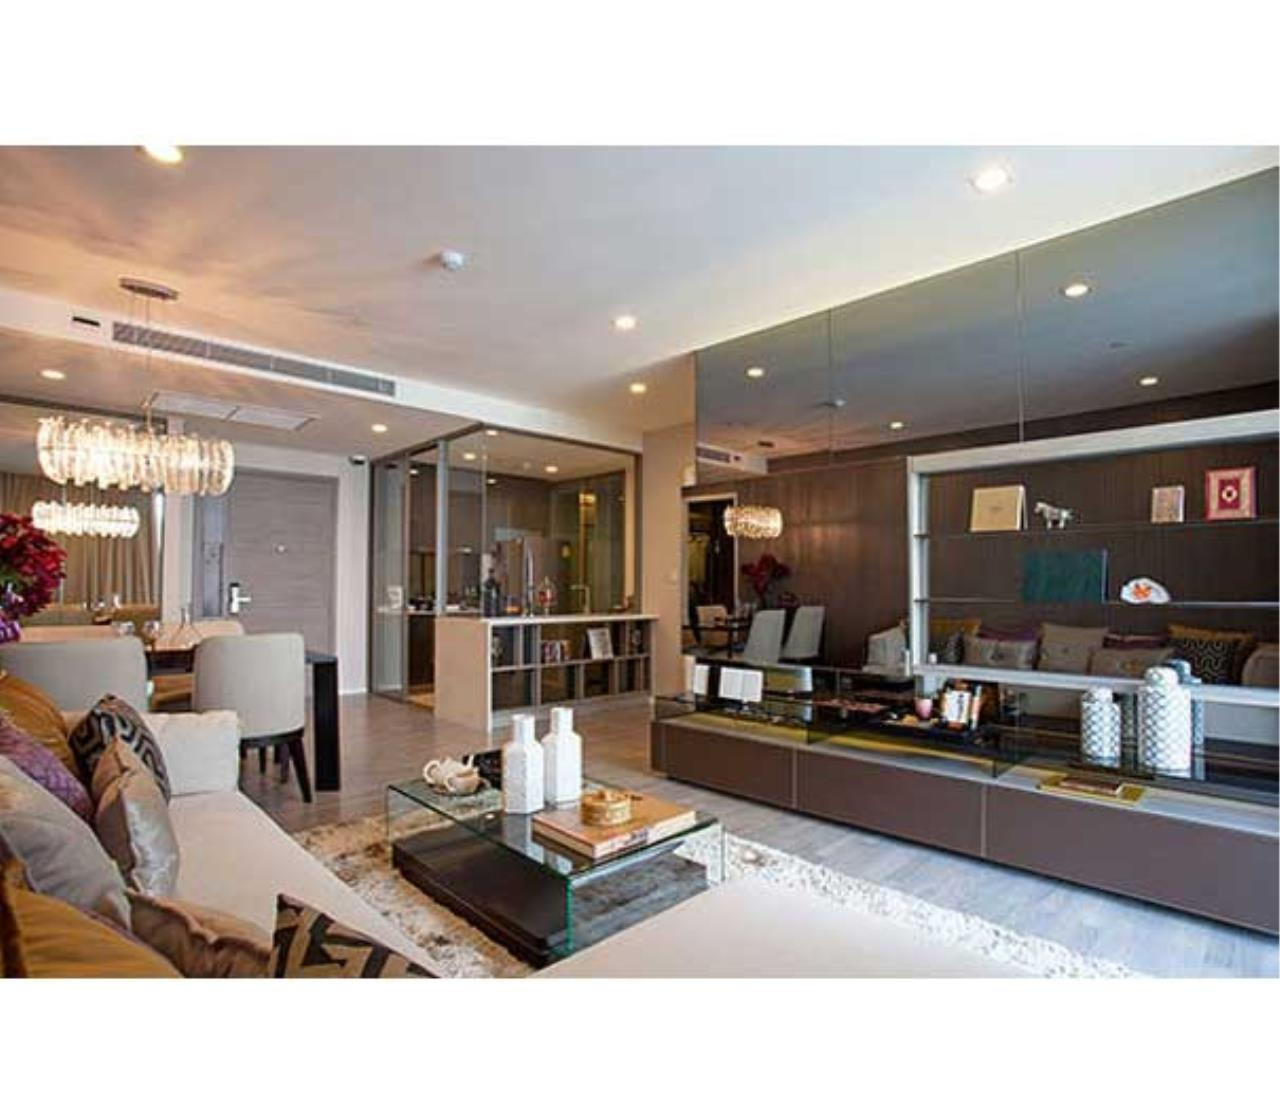 Quality Life Property Agency's RENT **** WITH TENANT ! THE ROOM SUKHUMVIT 62   1 BED 1 BATH   45 SQ. M. 15 FOOR 4